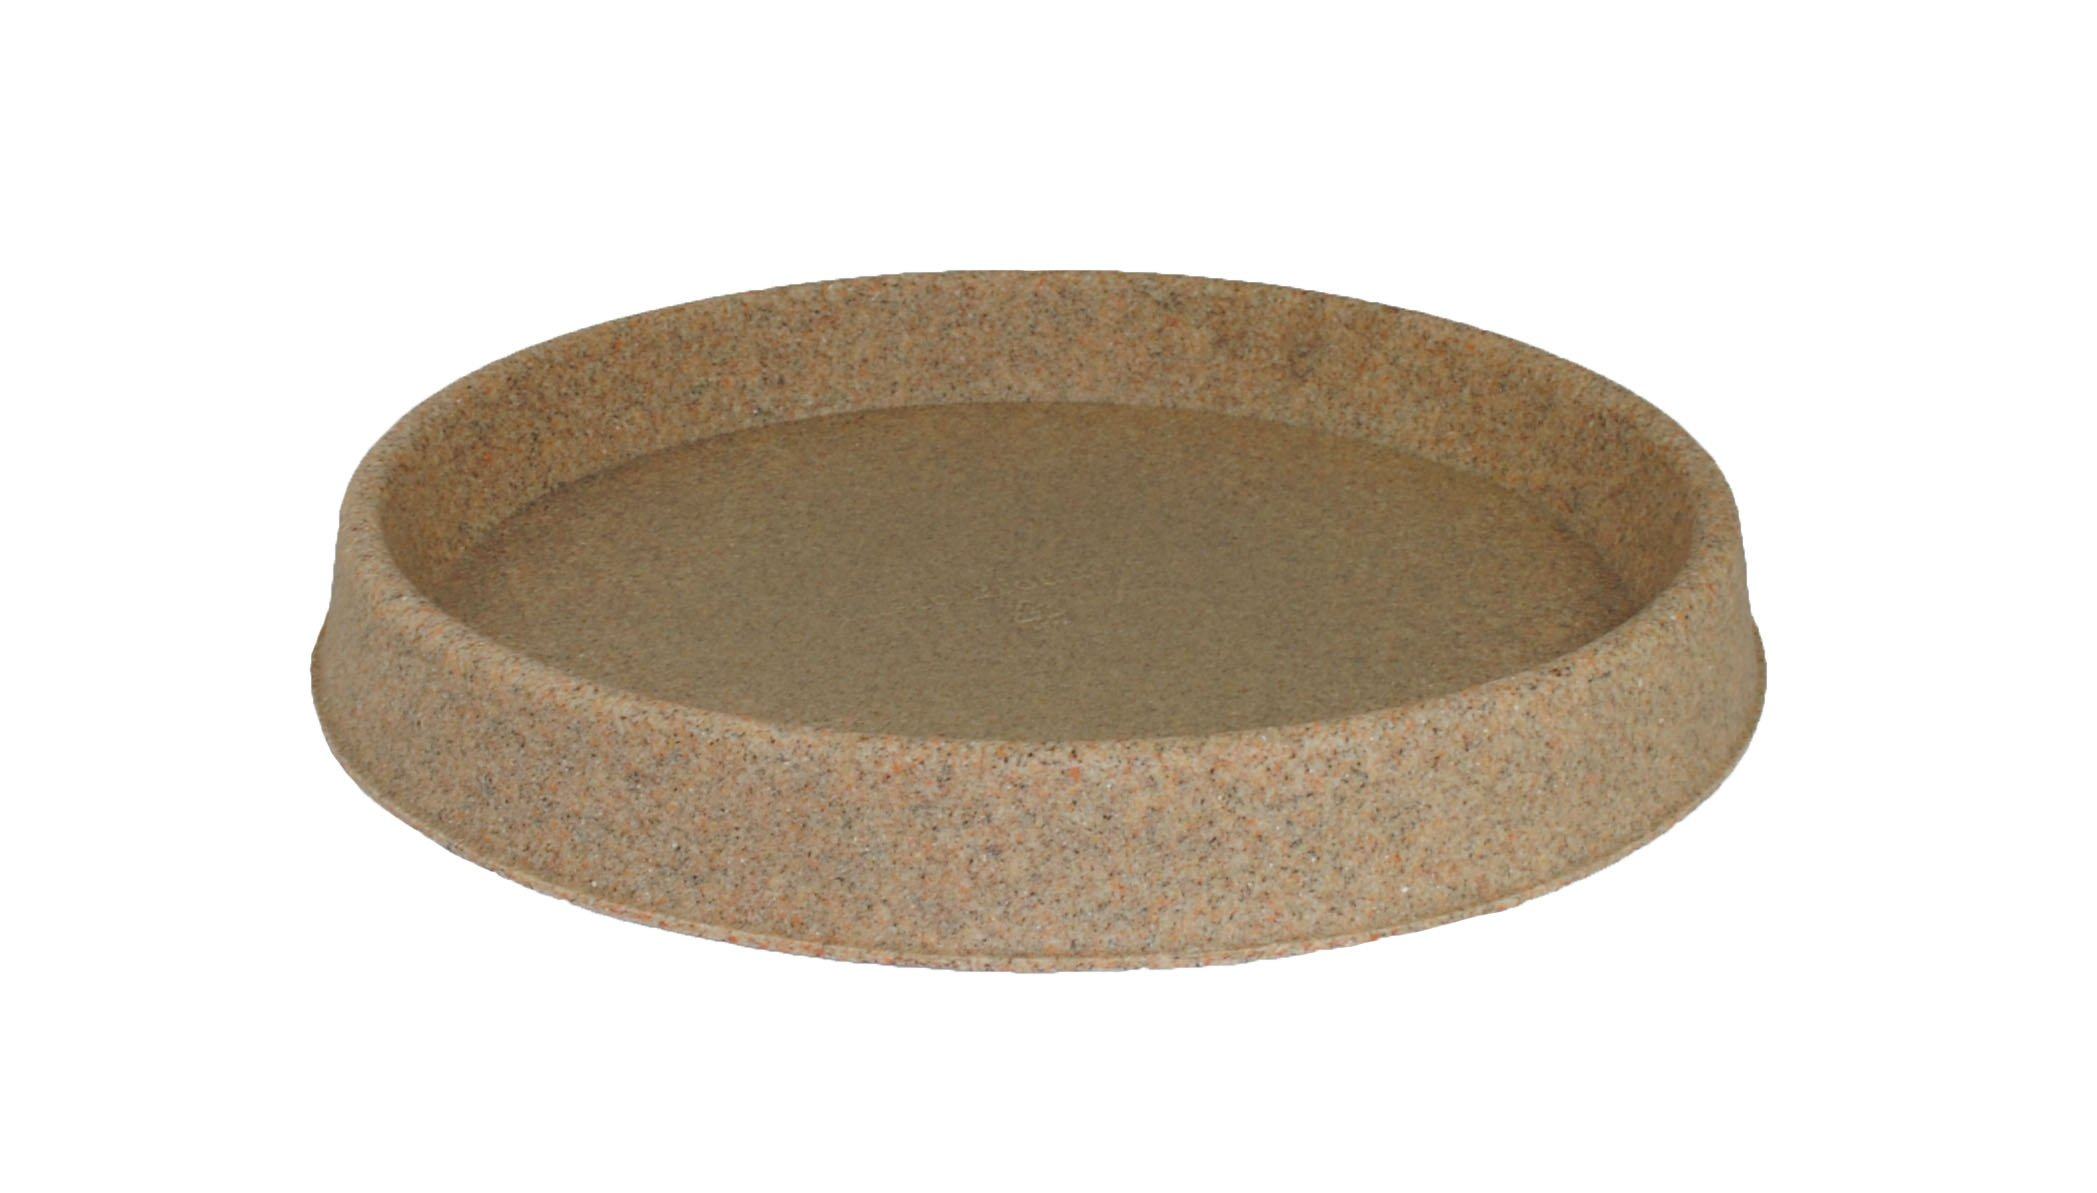 Tusco Products TR26SS Round Saucer, 26-Inch Diameter, Sandstone by Tusco Products